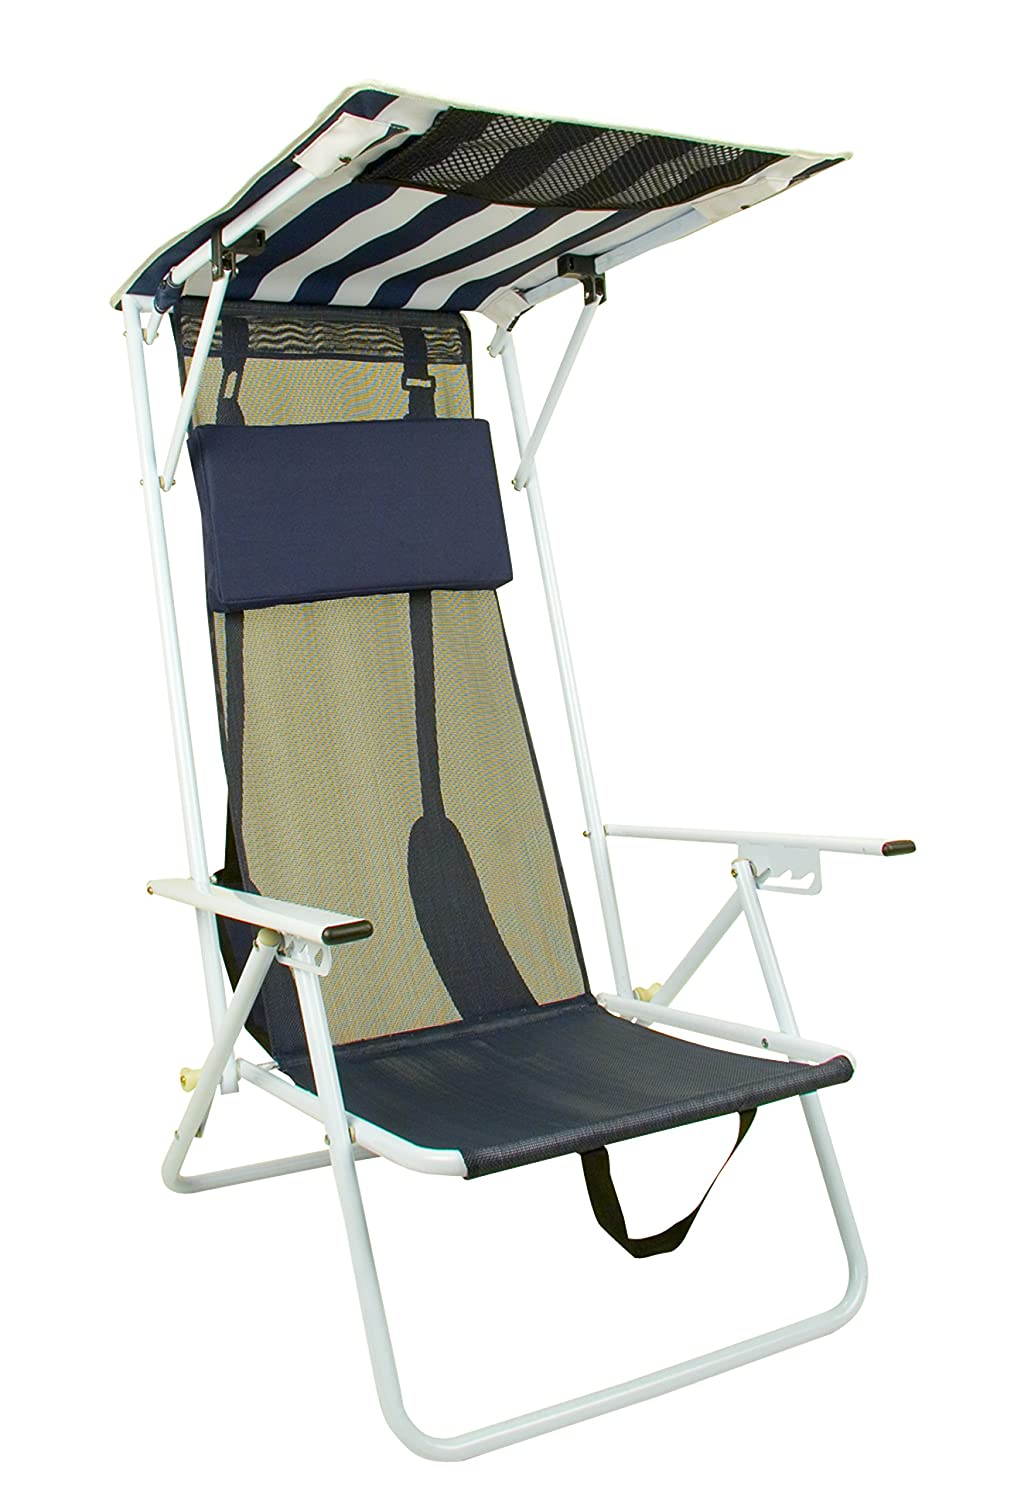 Amazon.com  Quik Shade Folding Beach Chair - Striped Navy Blue  C&ing Furniture  Sports u0026 Outdoors  sc 1 st  Amazon.com & Amazon.com : Quik Shade Folding Beach Chair - Striped Navy Blue ...